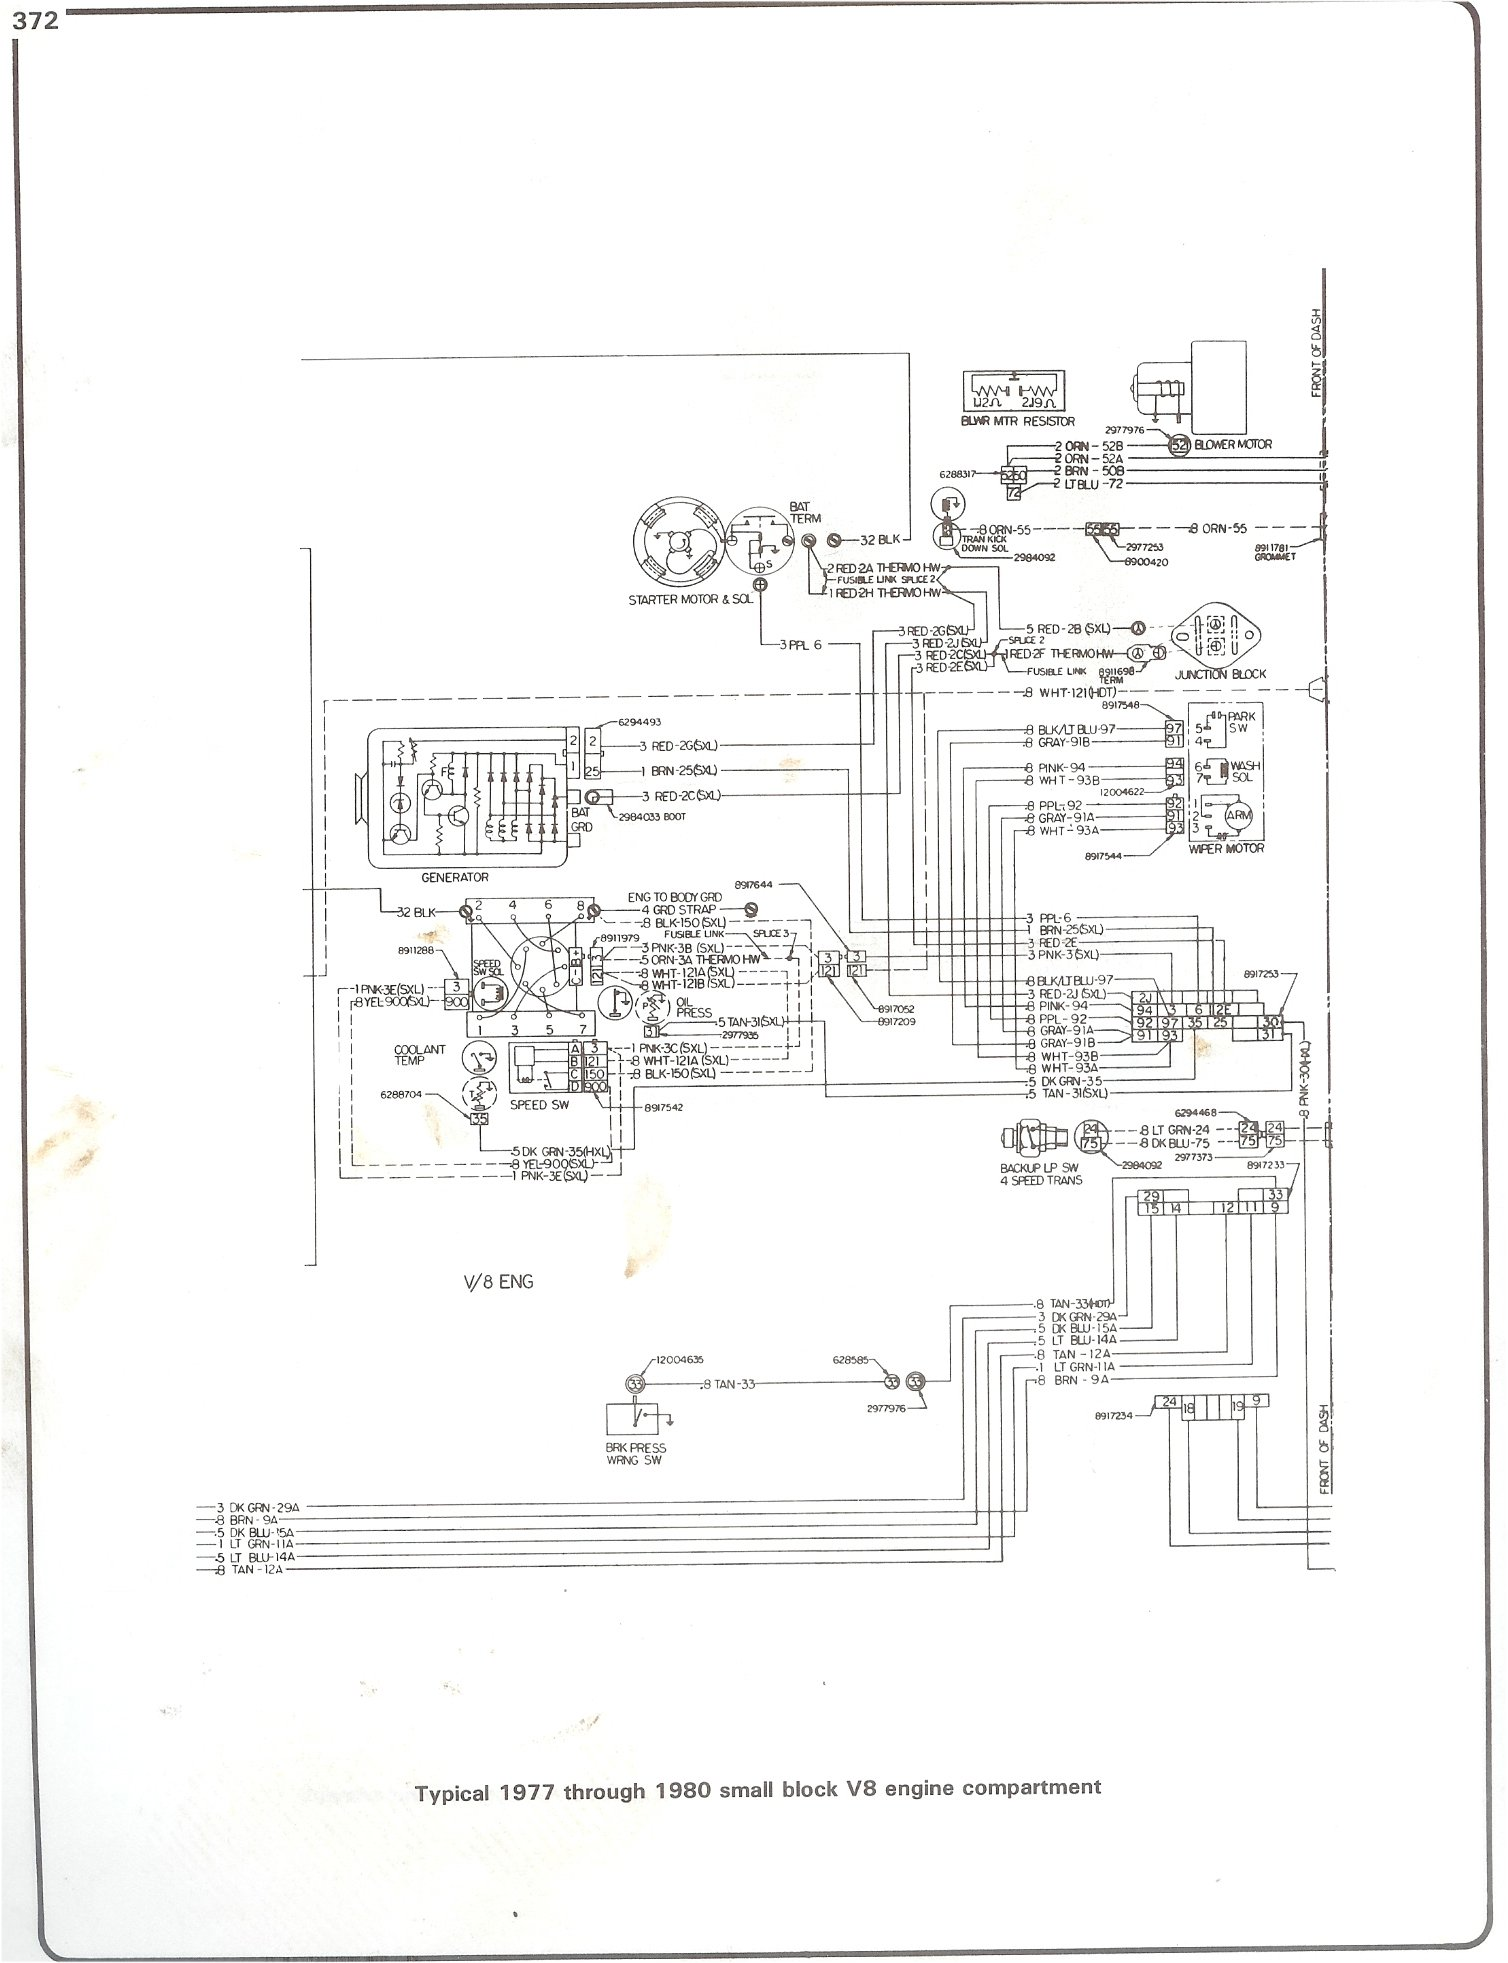 complete 73 87 wiring diagrams rh forum 73 87chevytrucks com 1976 Chevy Truck Wiring Diagram 1976 Chevy Truck Wiring Diagram